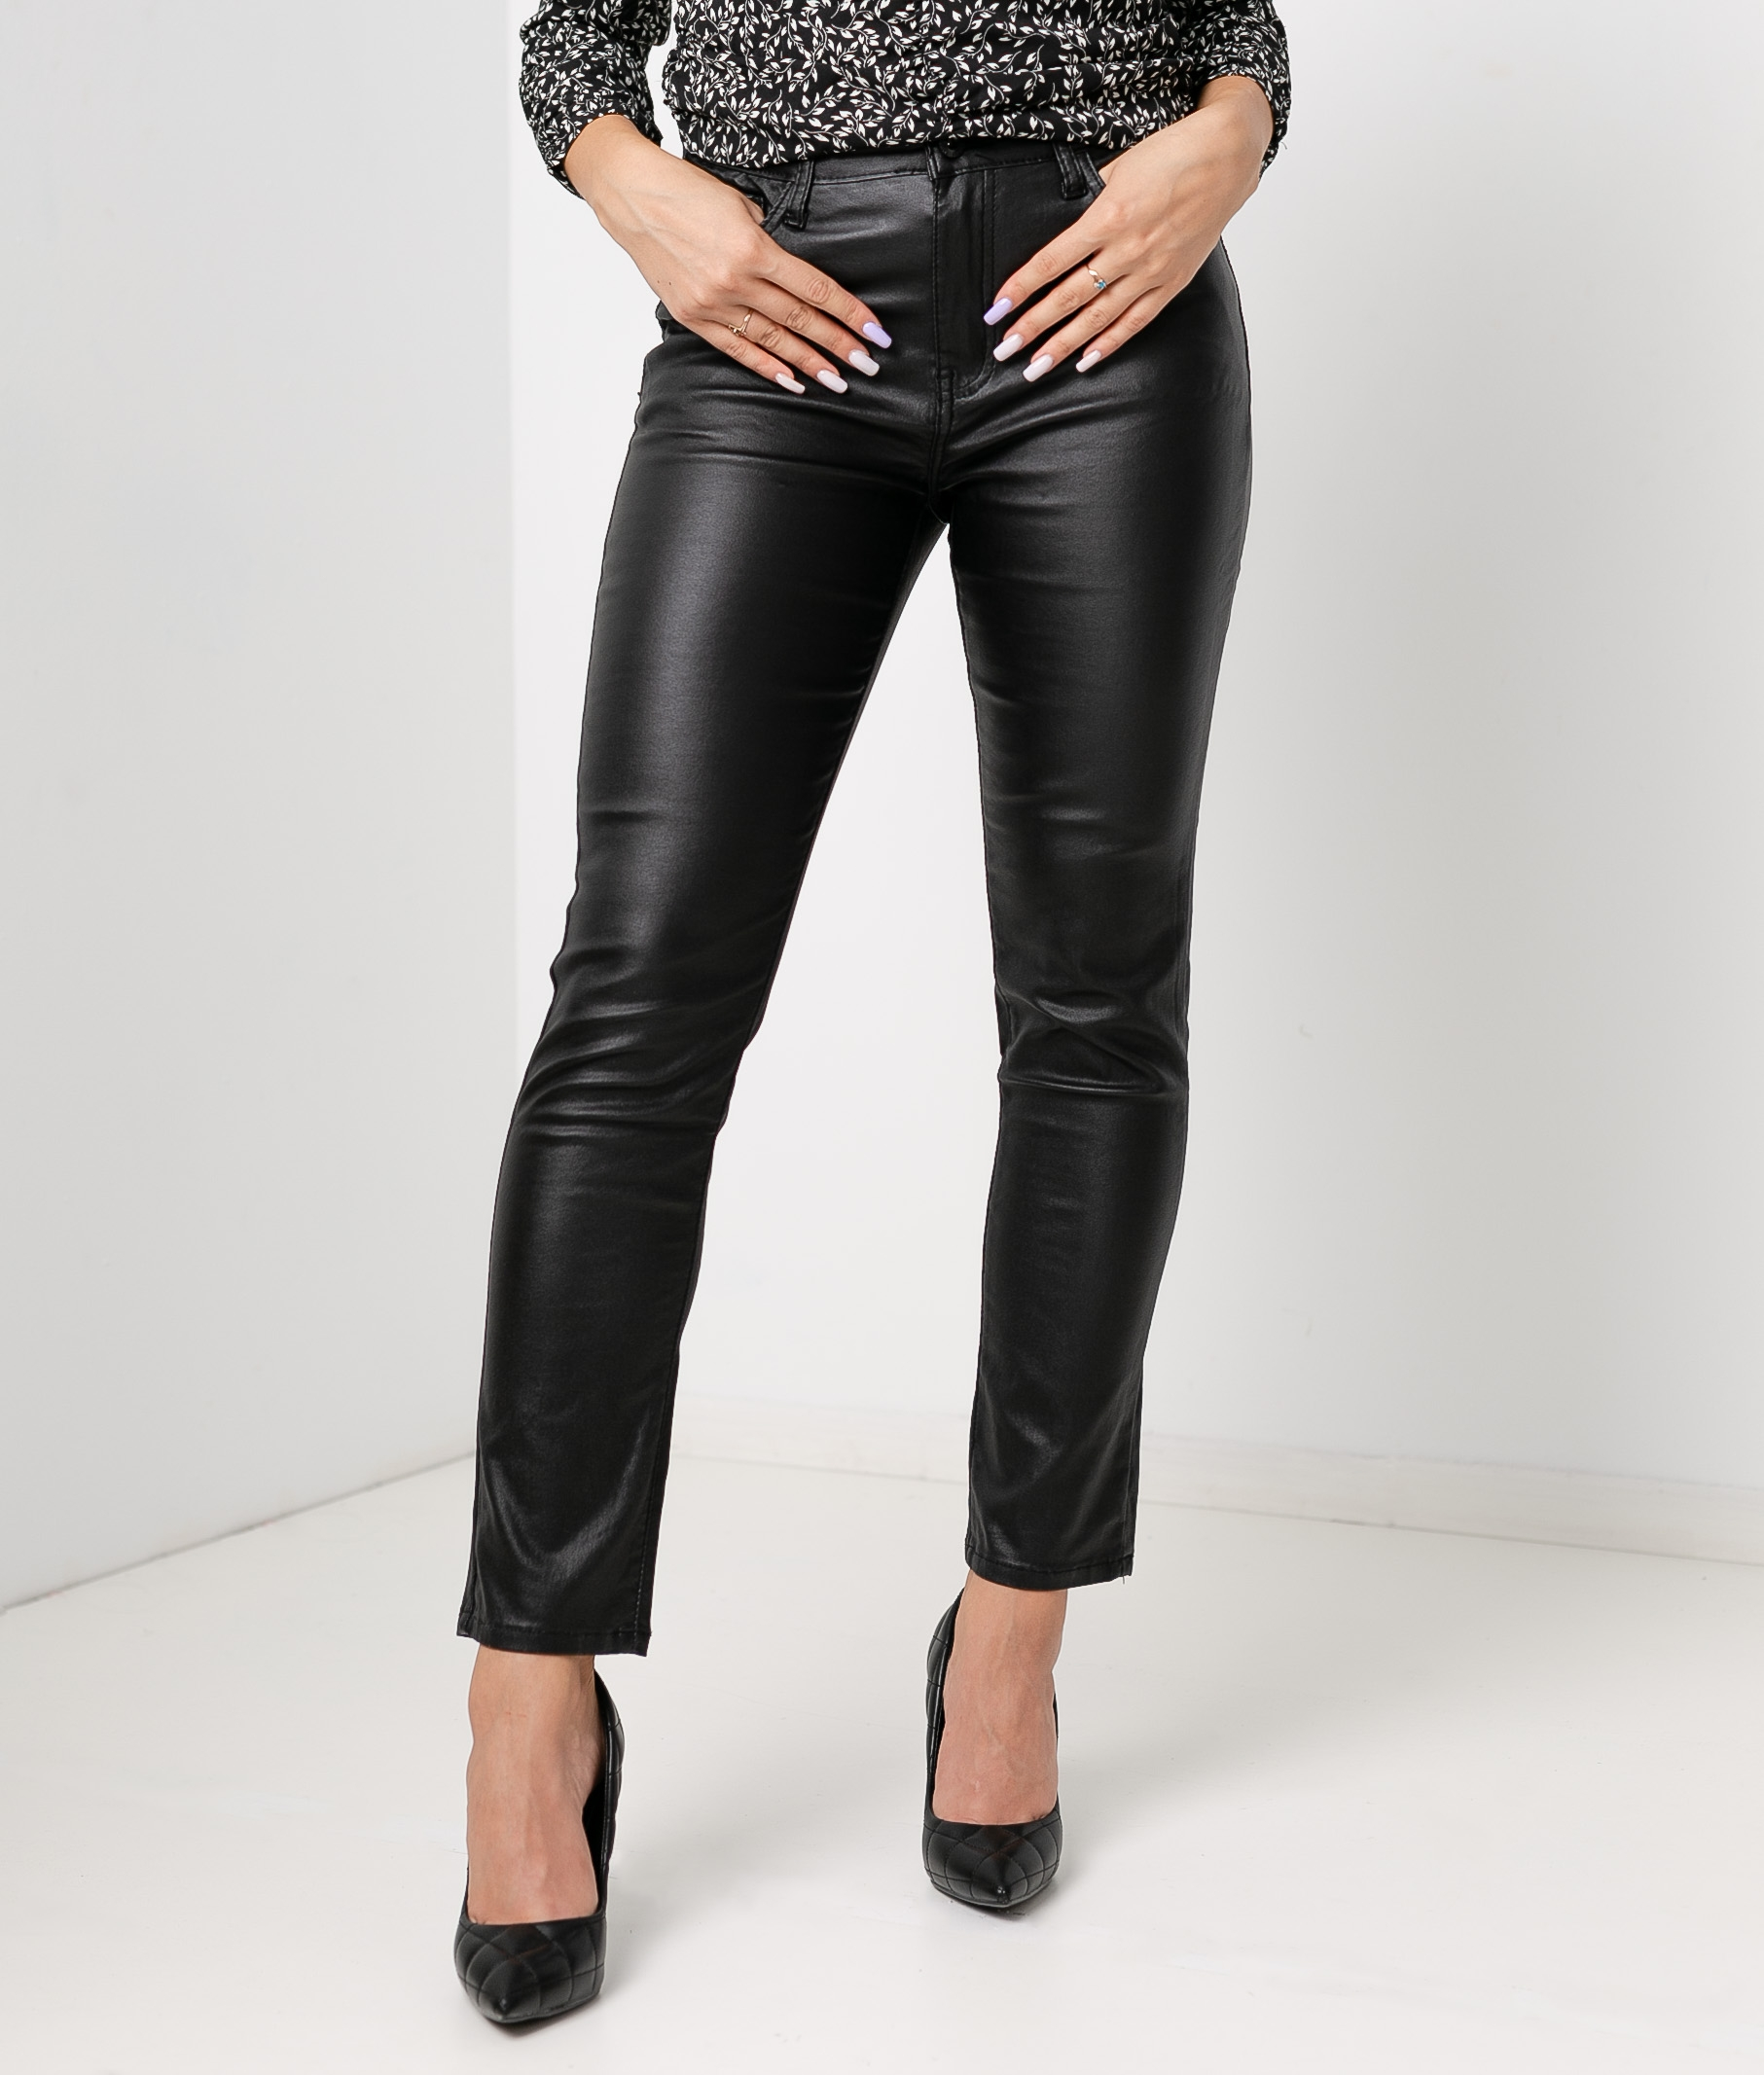 NOET TROUSERS - BLACK